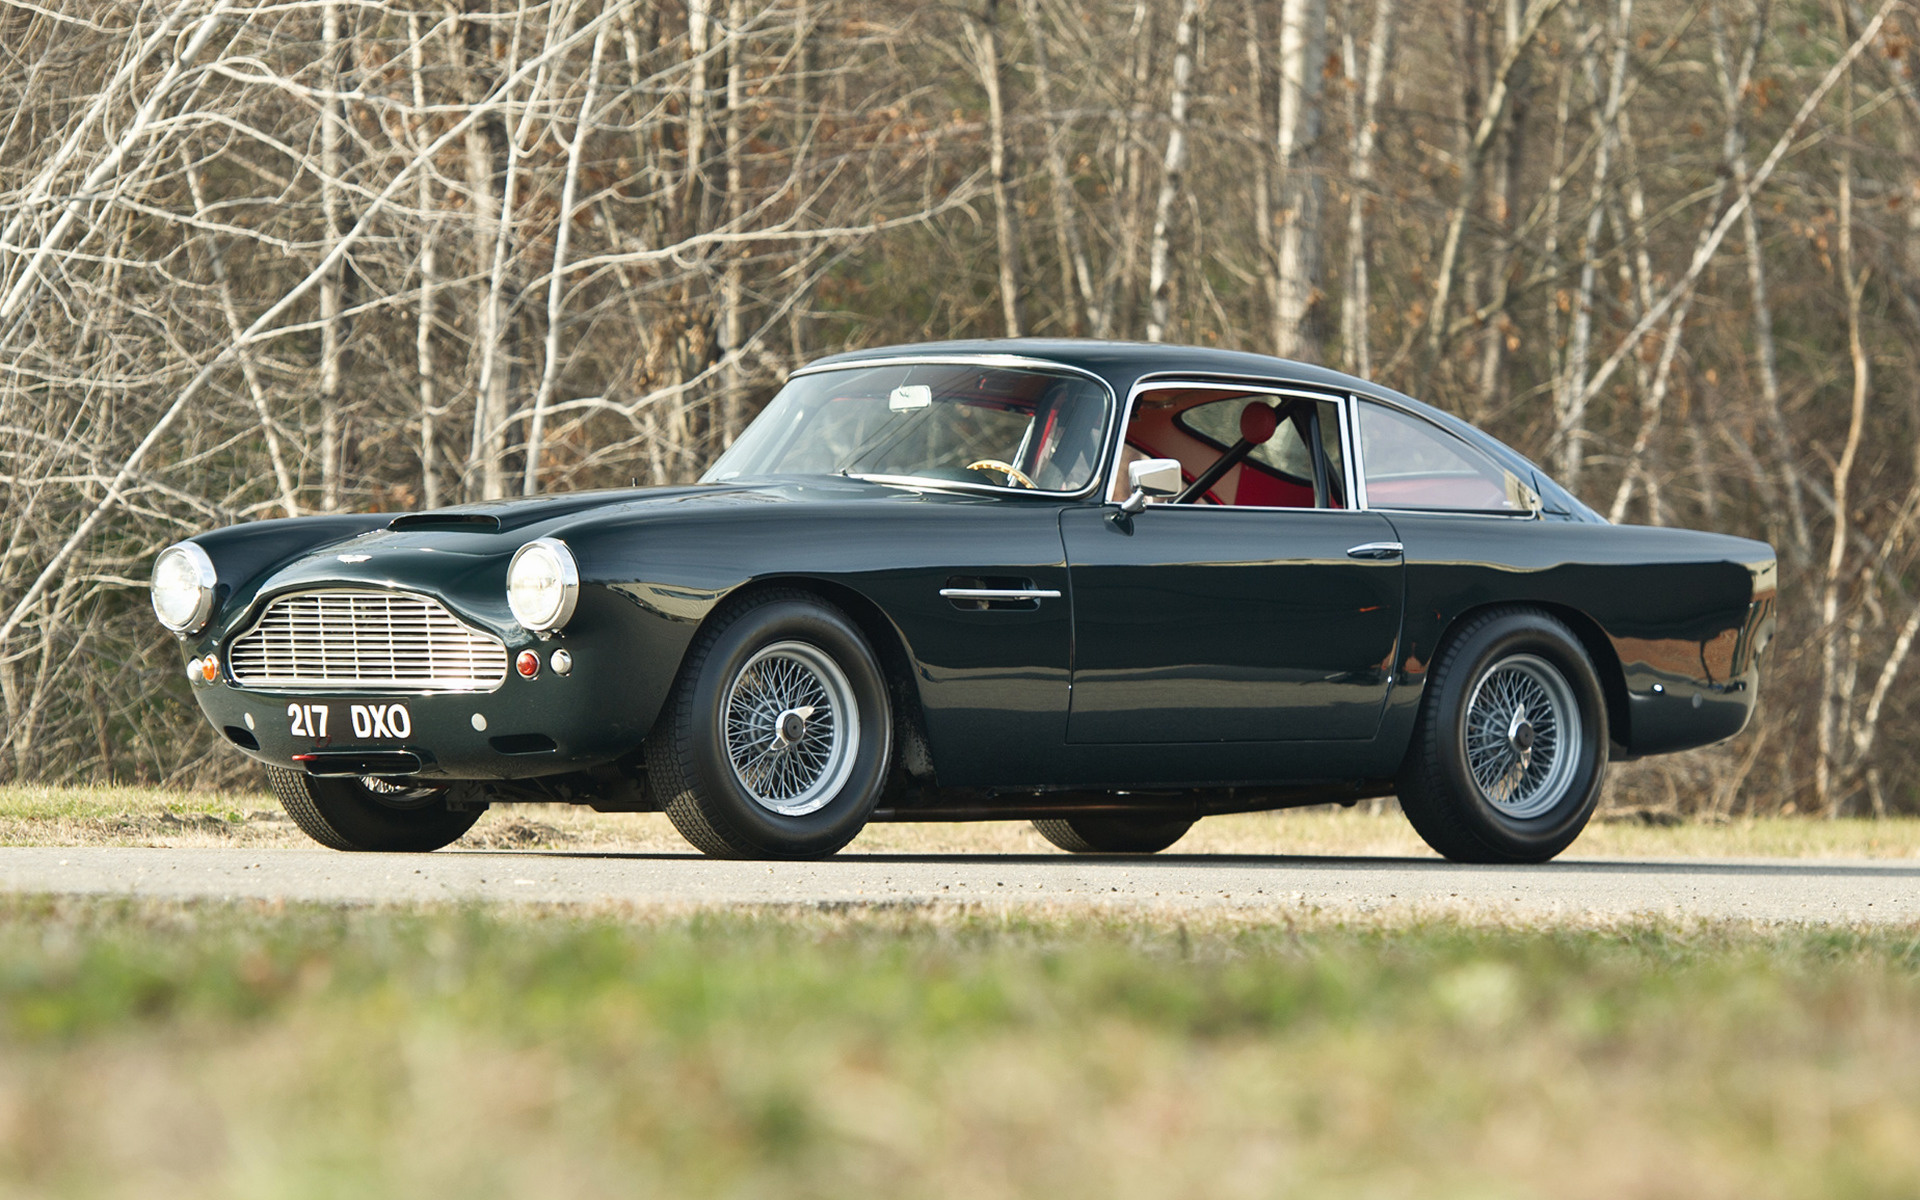 Who Owns Mazda >> 1961 Aston Martin DB4 Lightweight Racer [IV] - Wallpapers ...